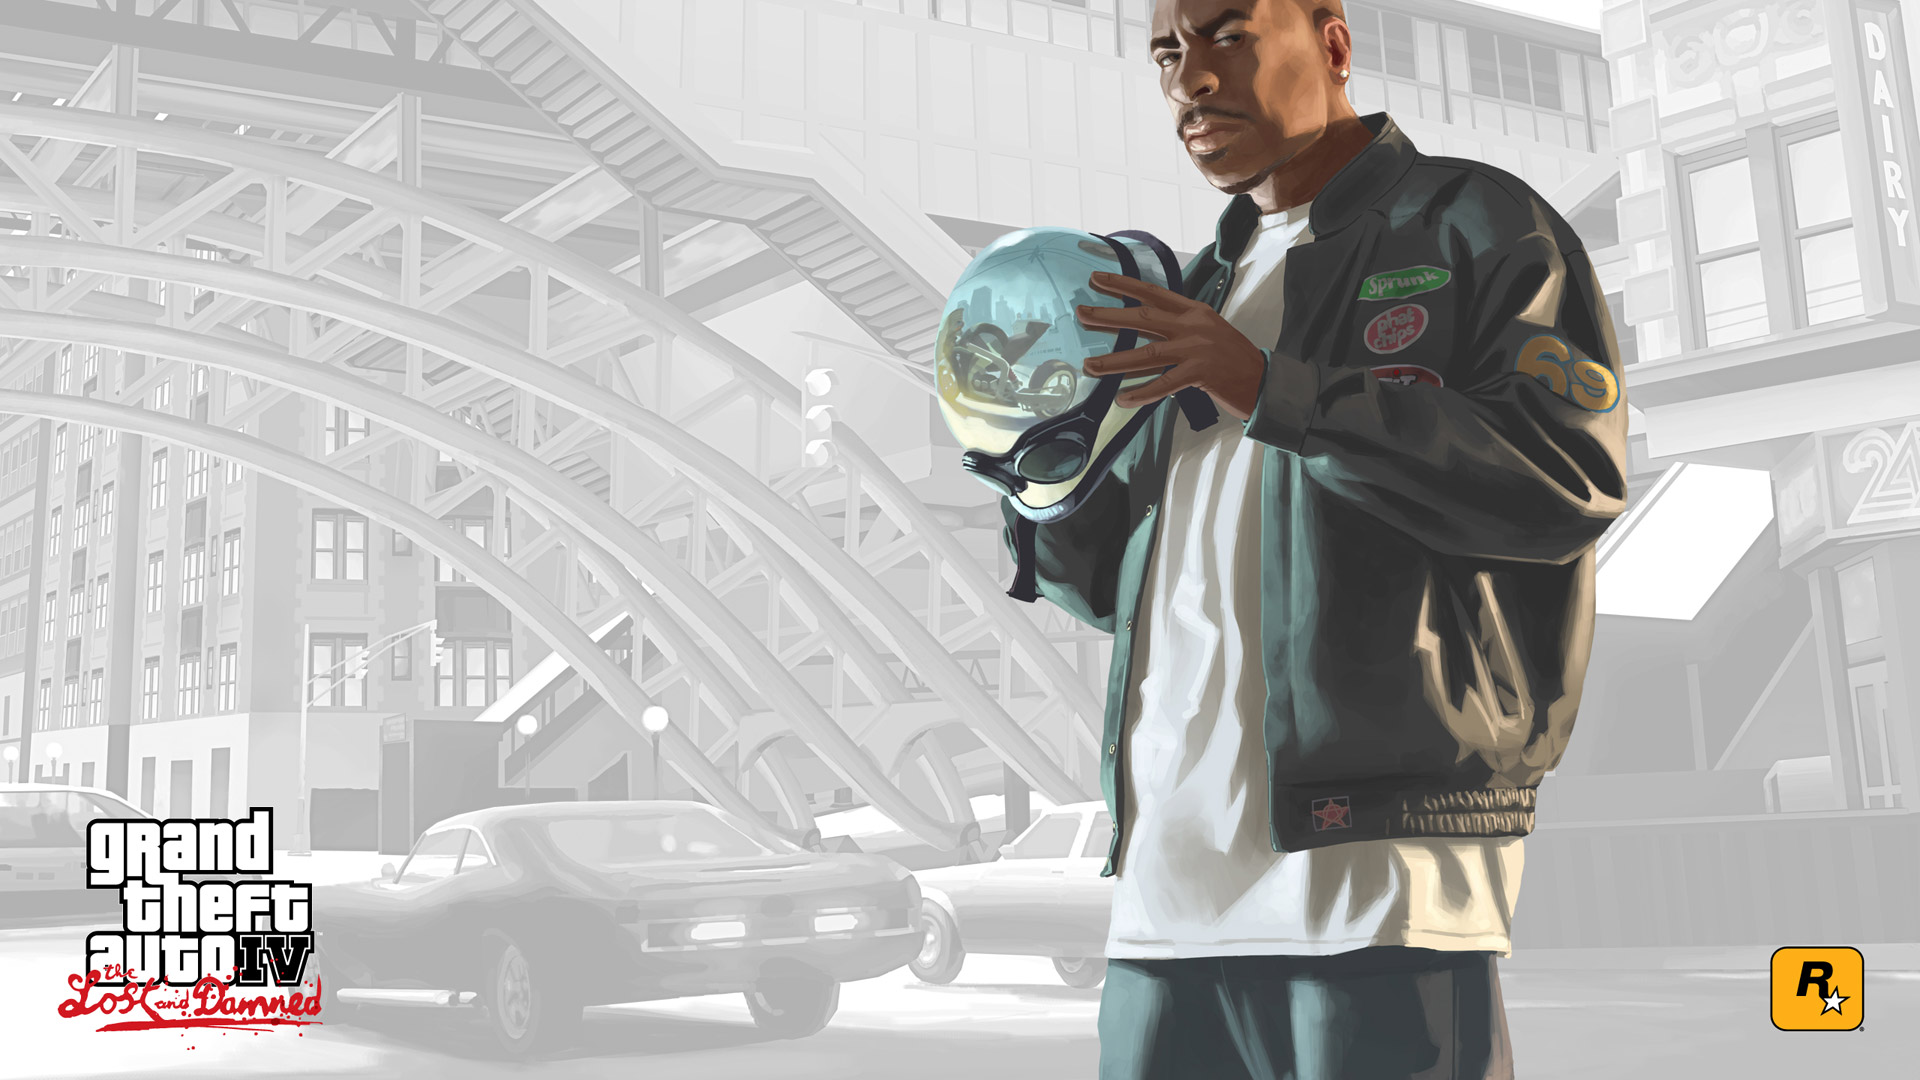 Free Grand Theft Auto IV Wallpaper in 1920x1080